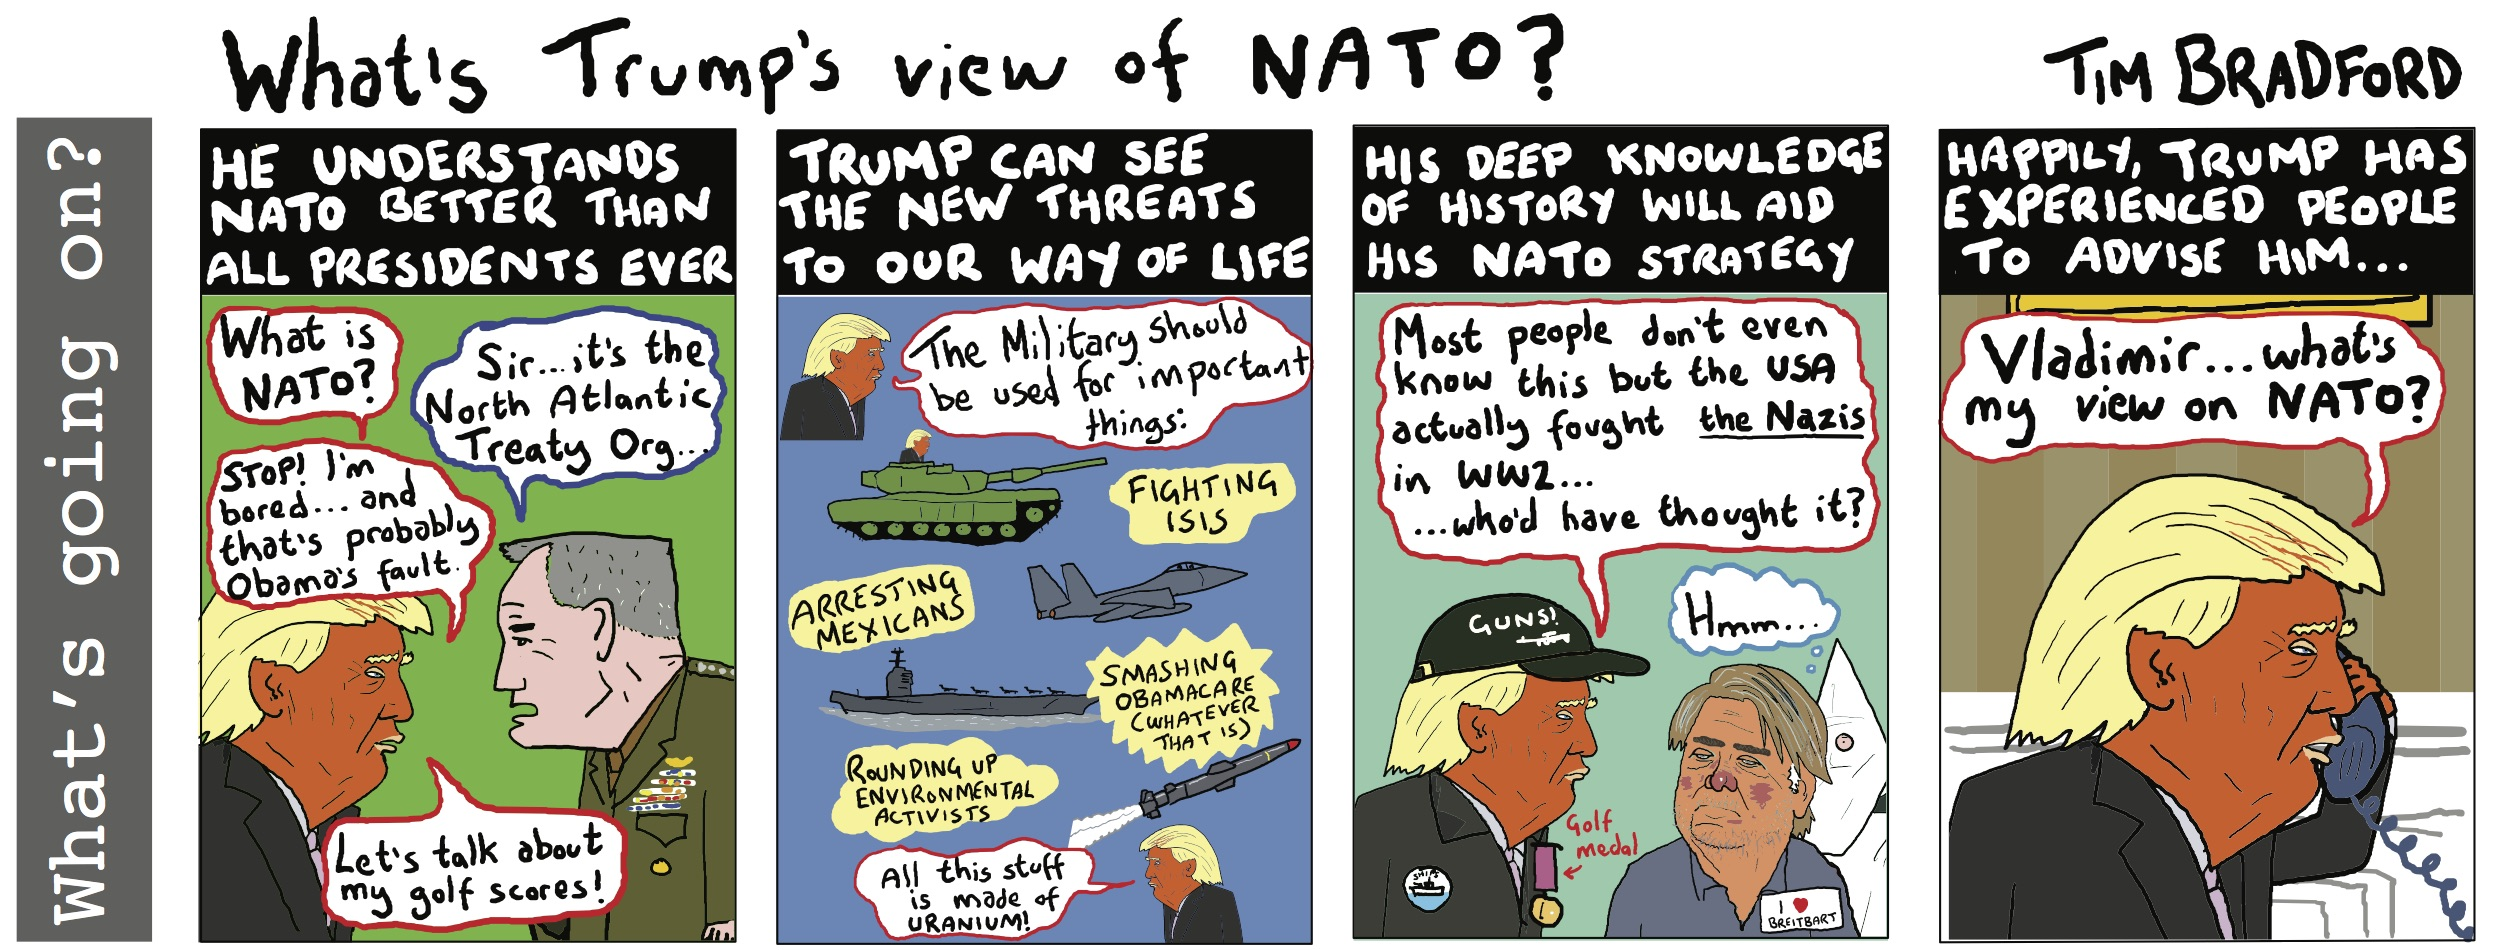 Copy of What's Trump's view of NATO? - 24/03/17